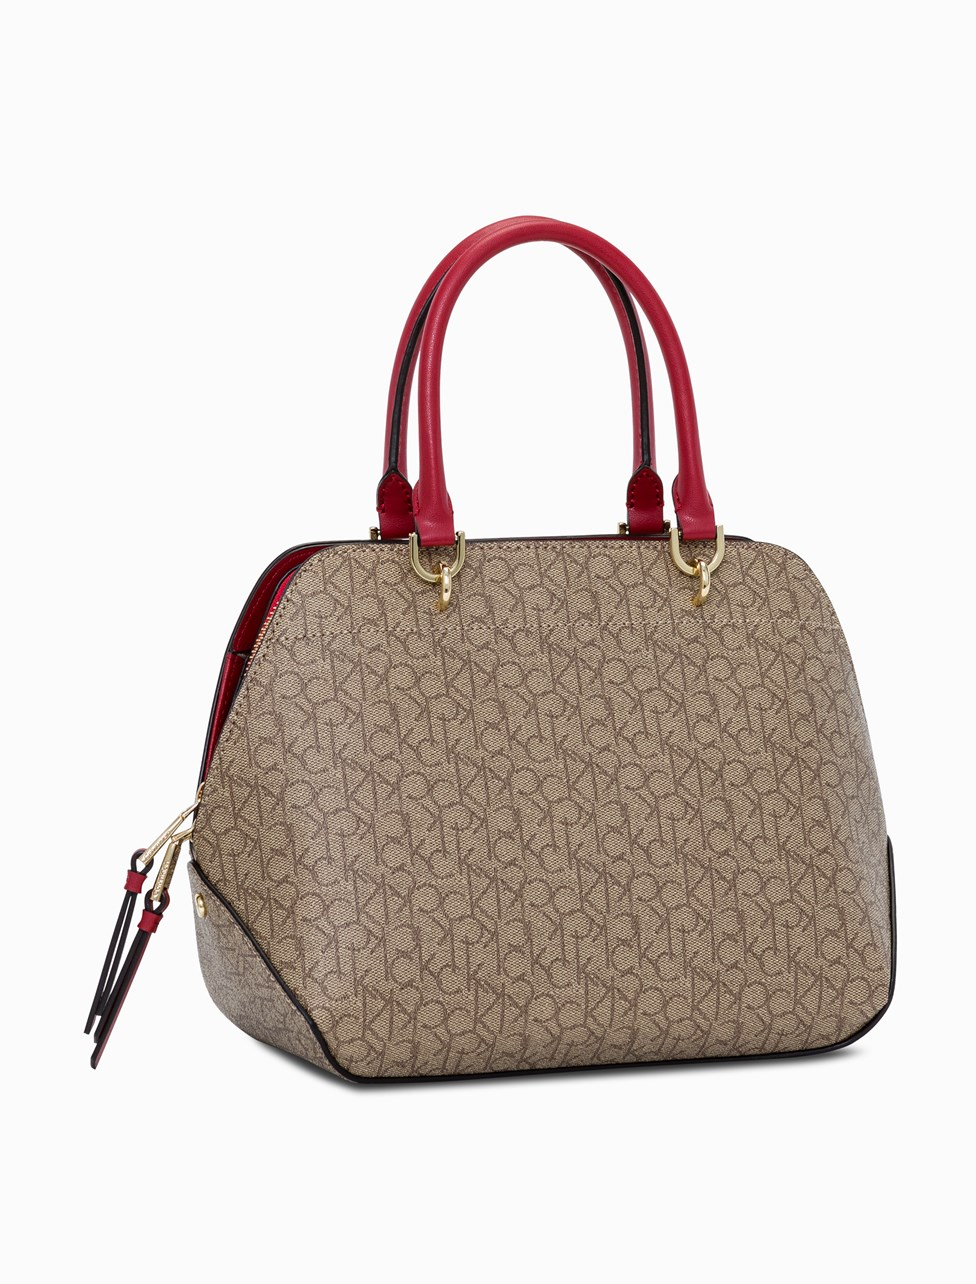 Suzanna Dome Satchel Bag